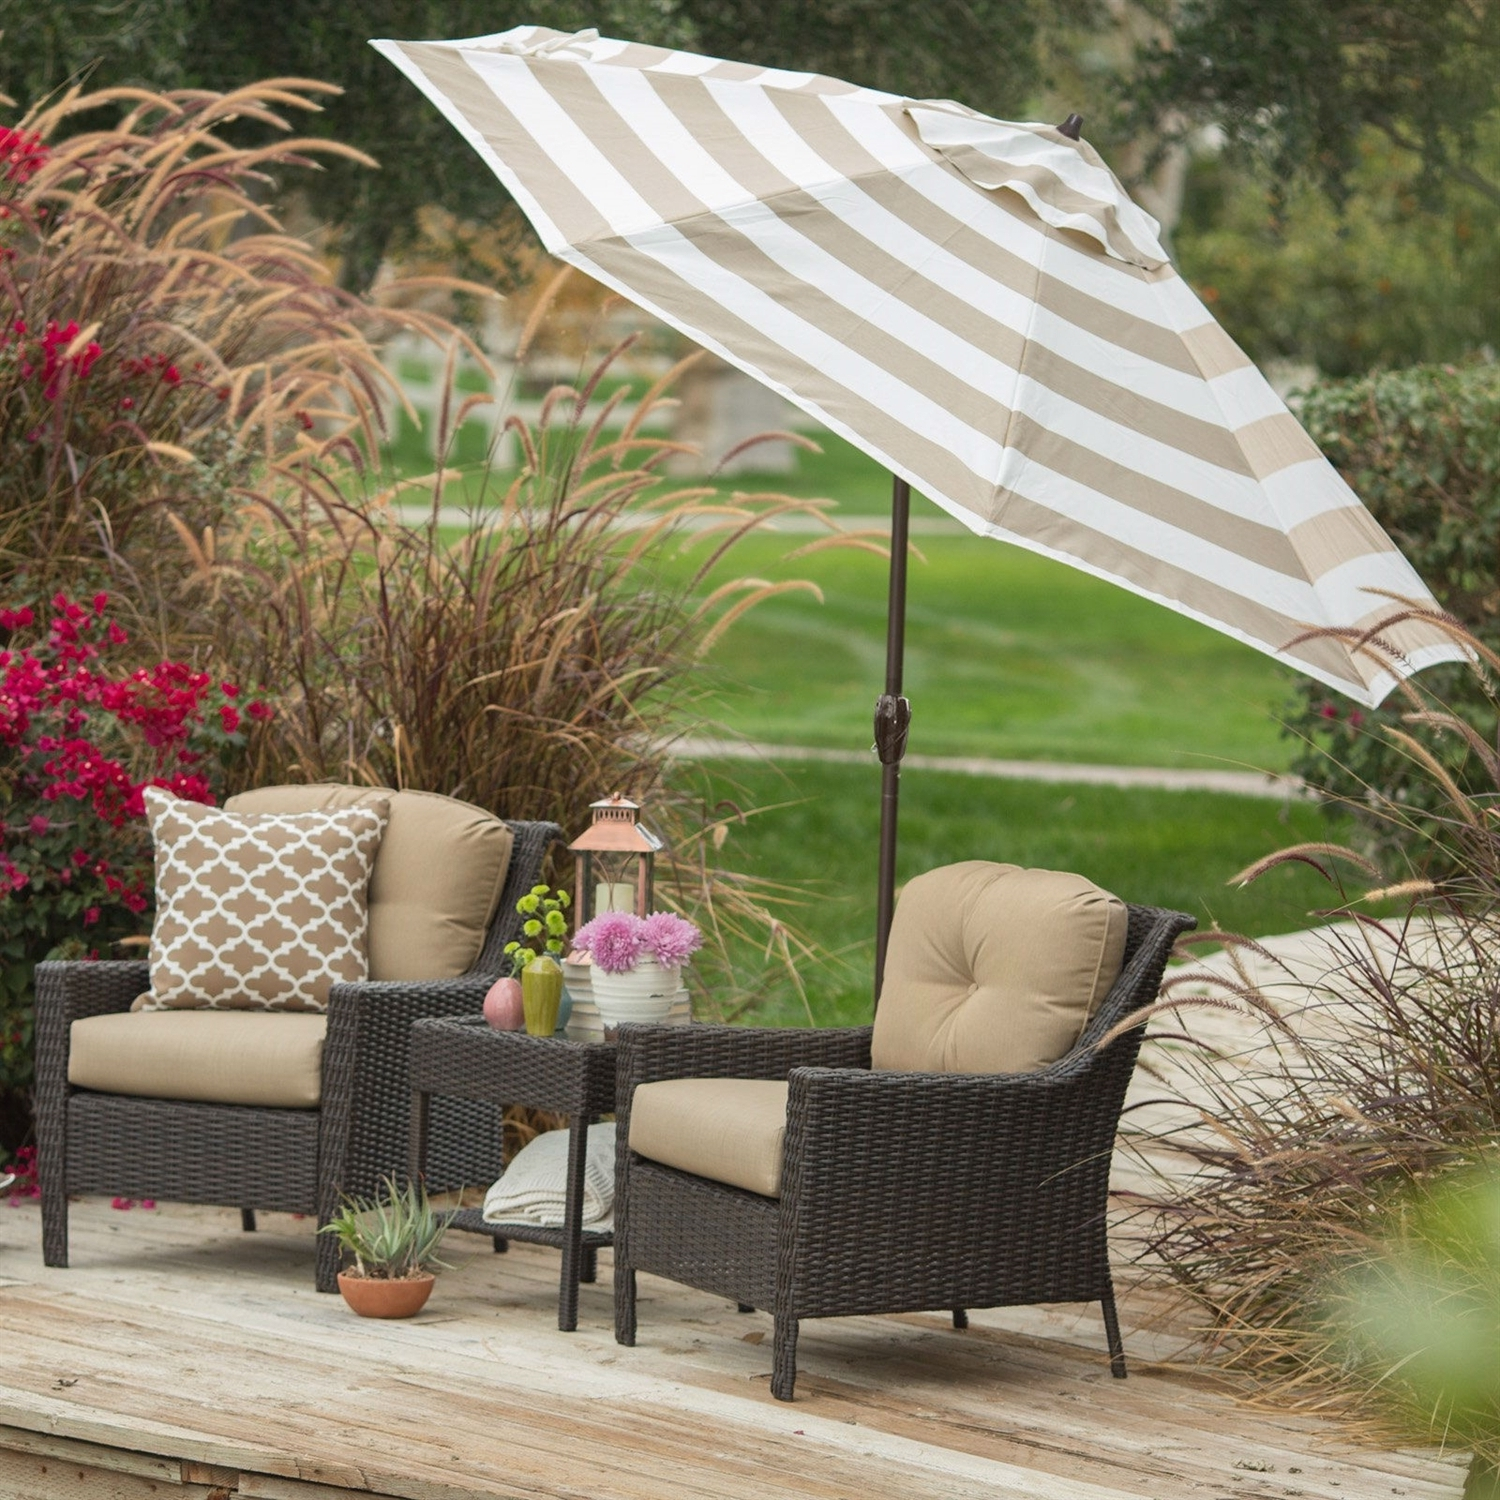 9 Ft Patio Umbrellas Intended For Most Recently Released 9 Ft Market Umbrella With Tilt And Crank With Beige And White Stripe (View 18 of 20)